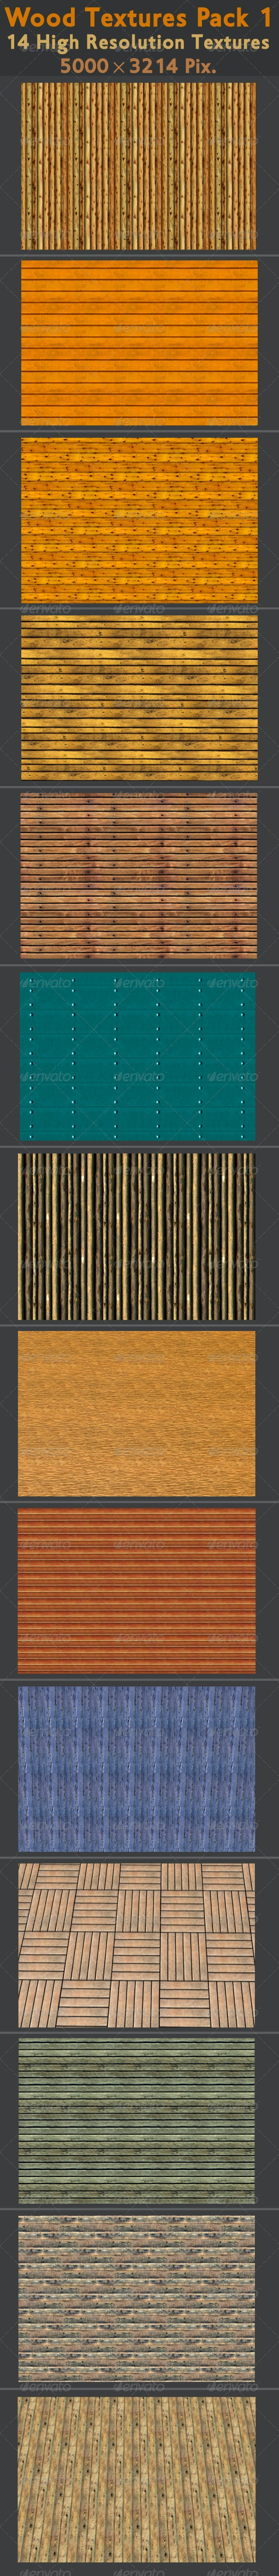 Wood Texture Pack 1 - Wood Textures